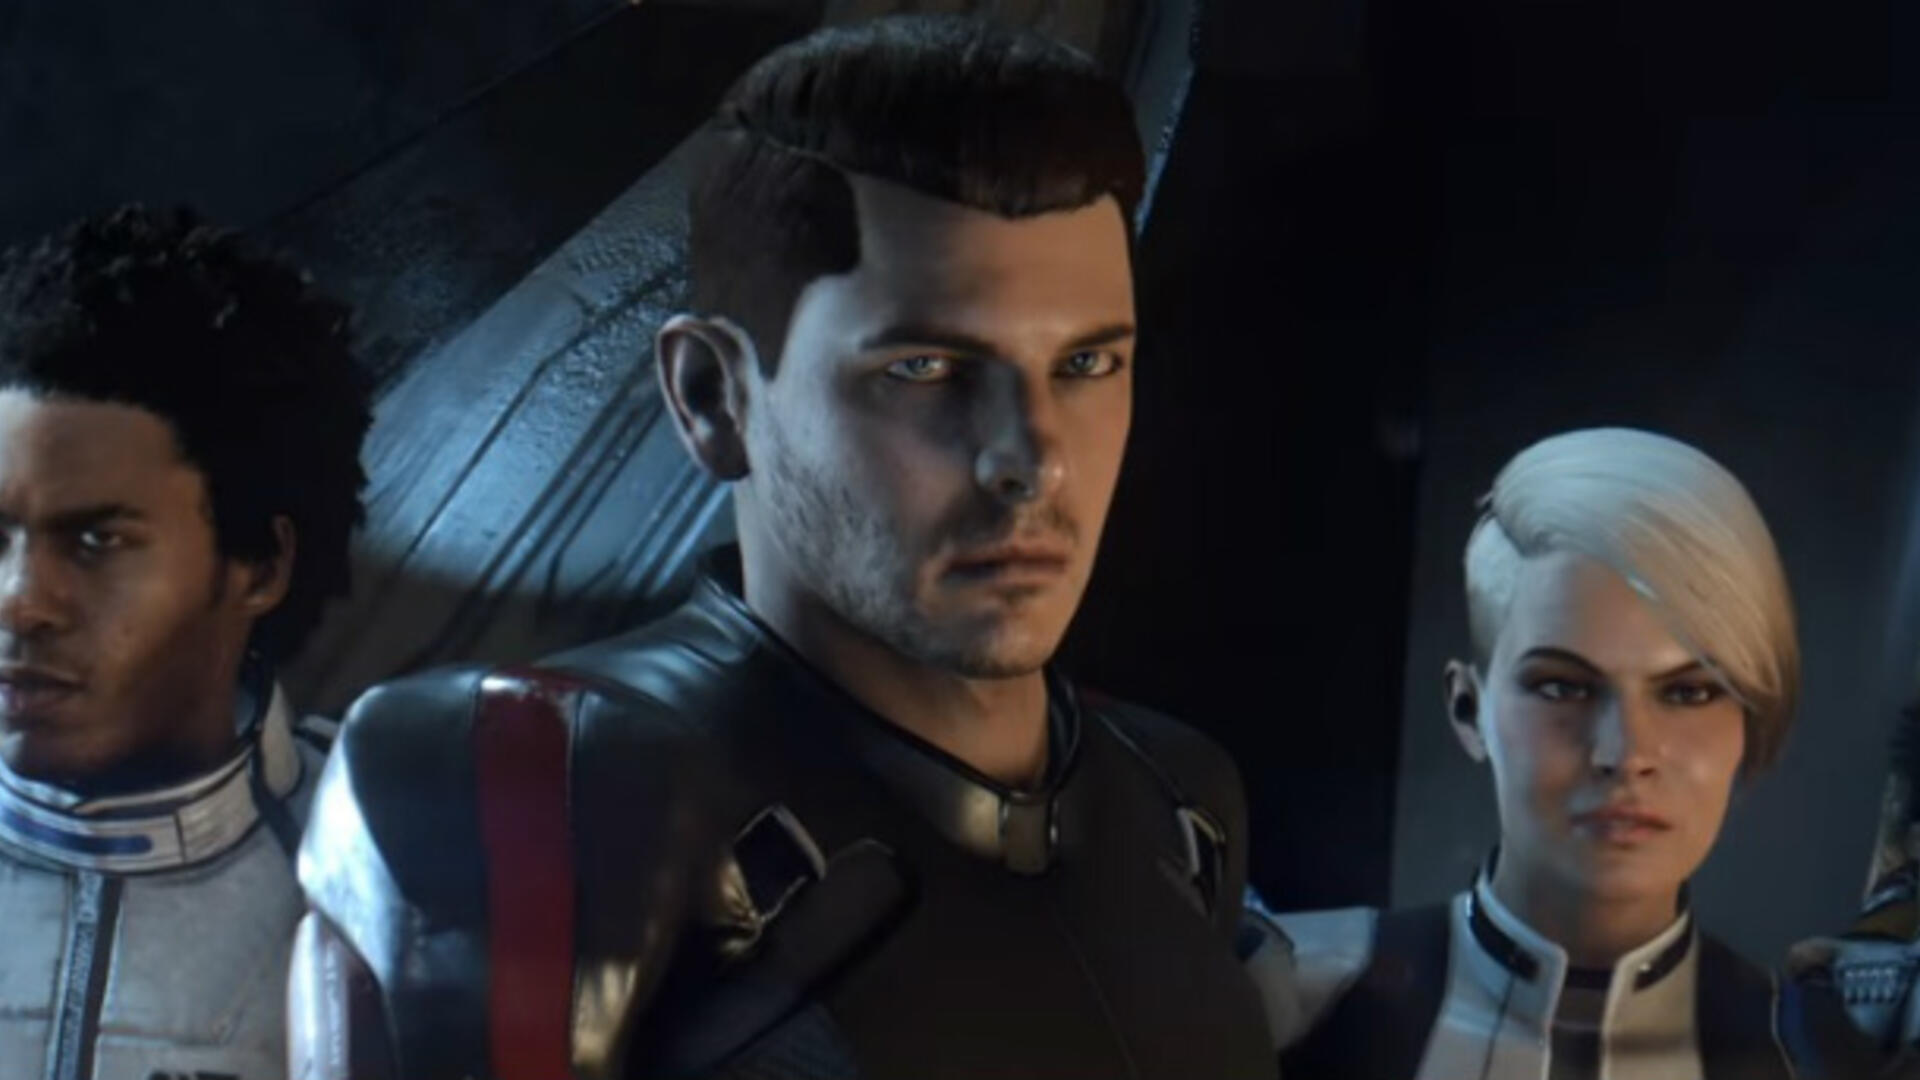 The Frostbite Engine Nearly Tanked Mass Effect Andromeda